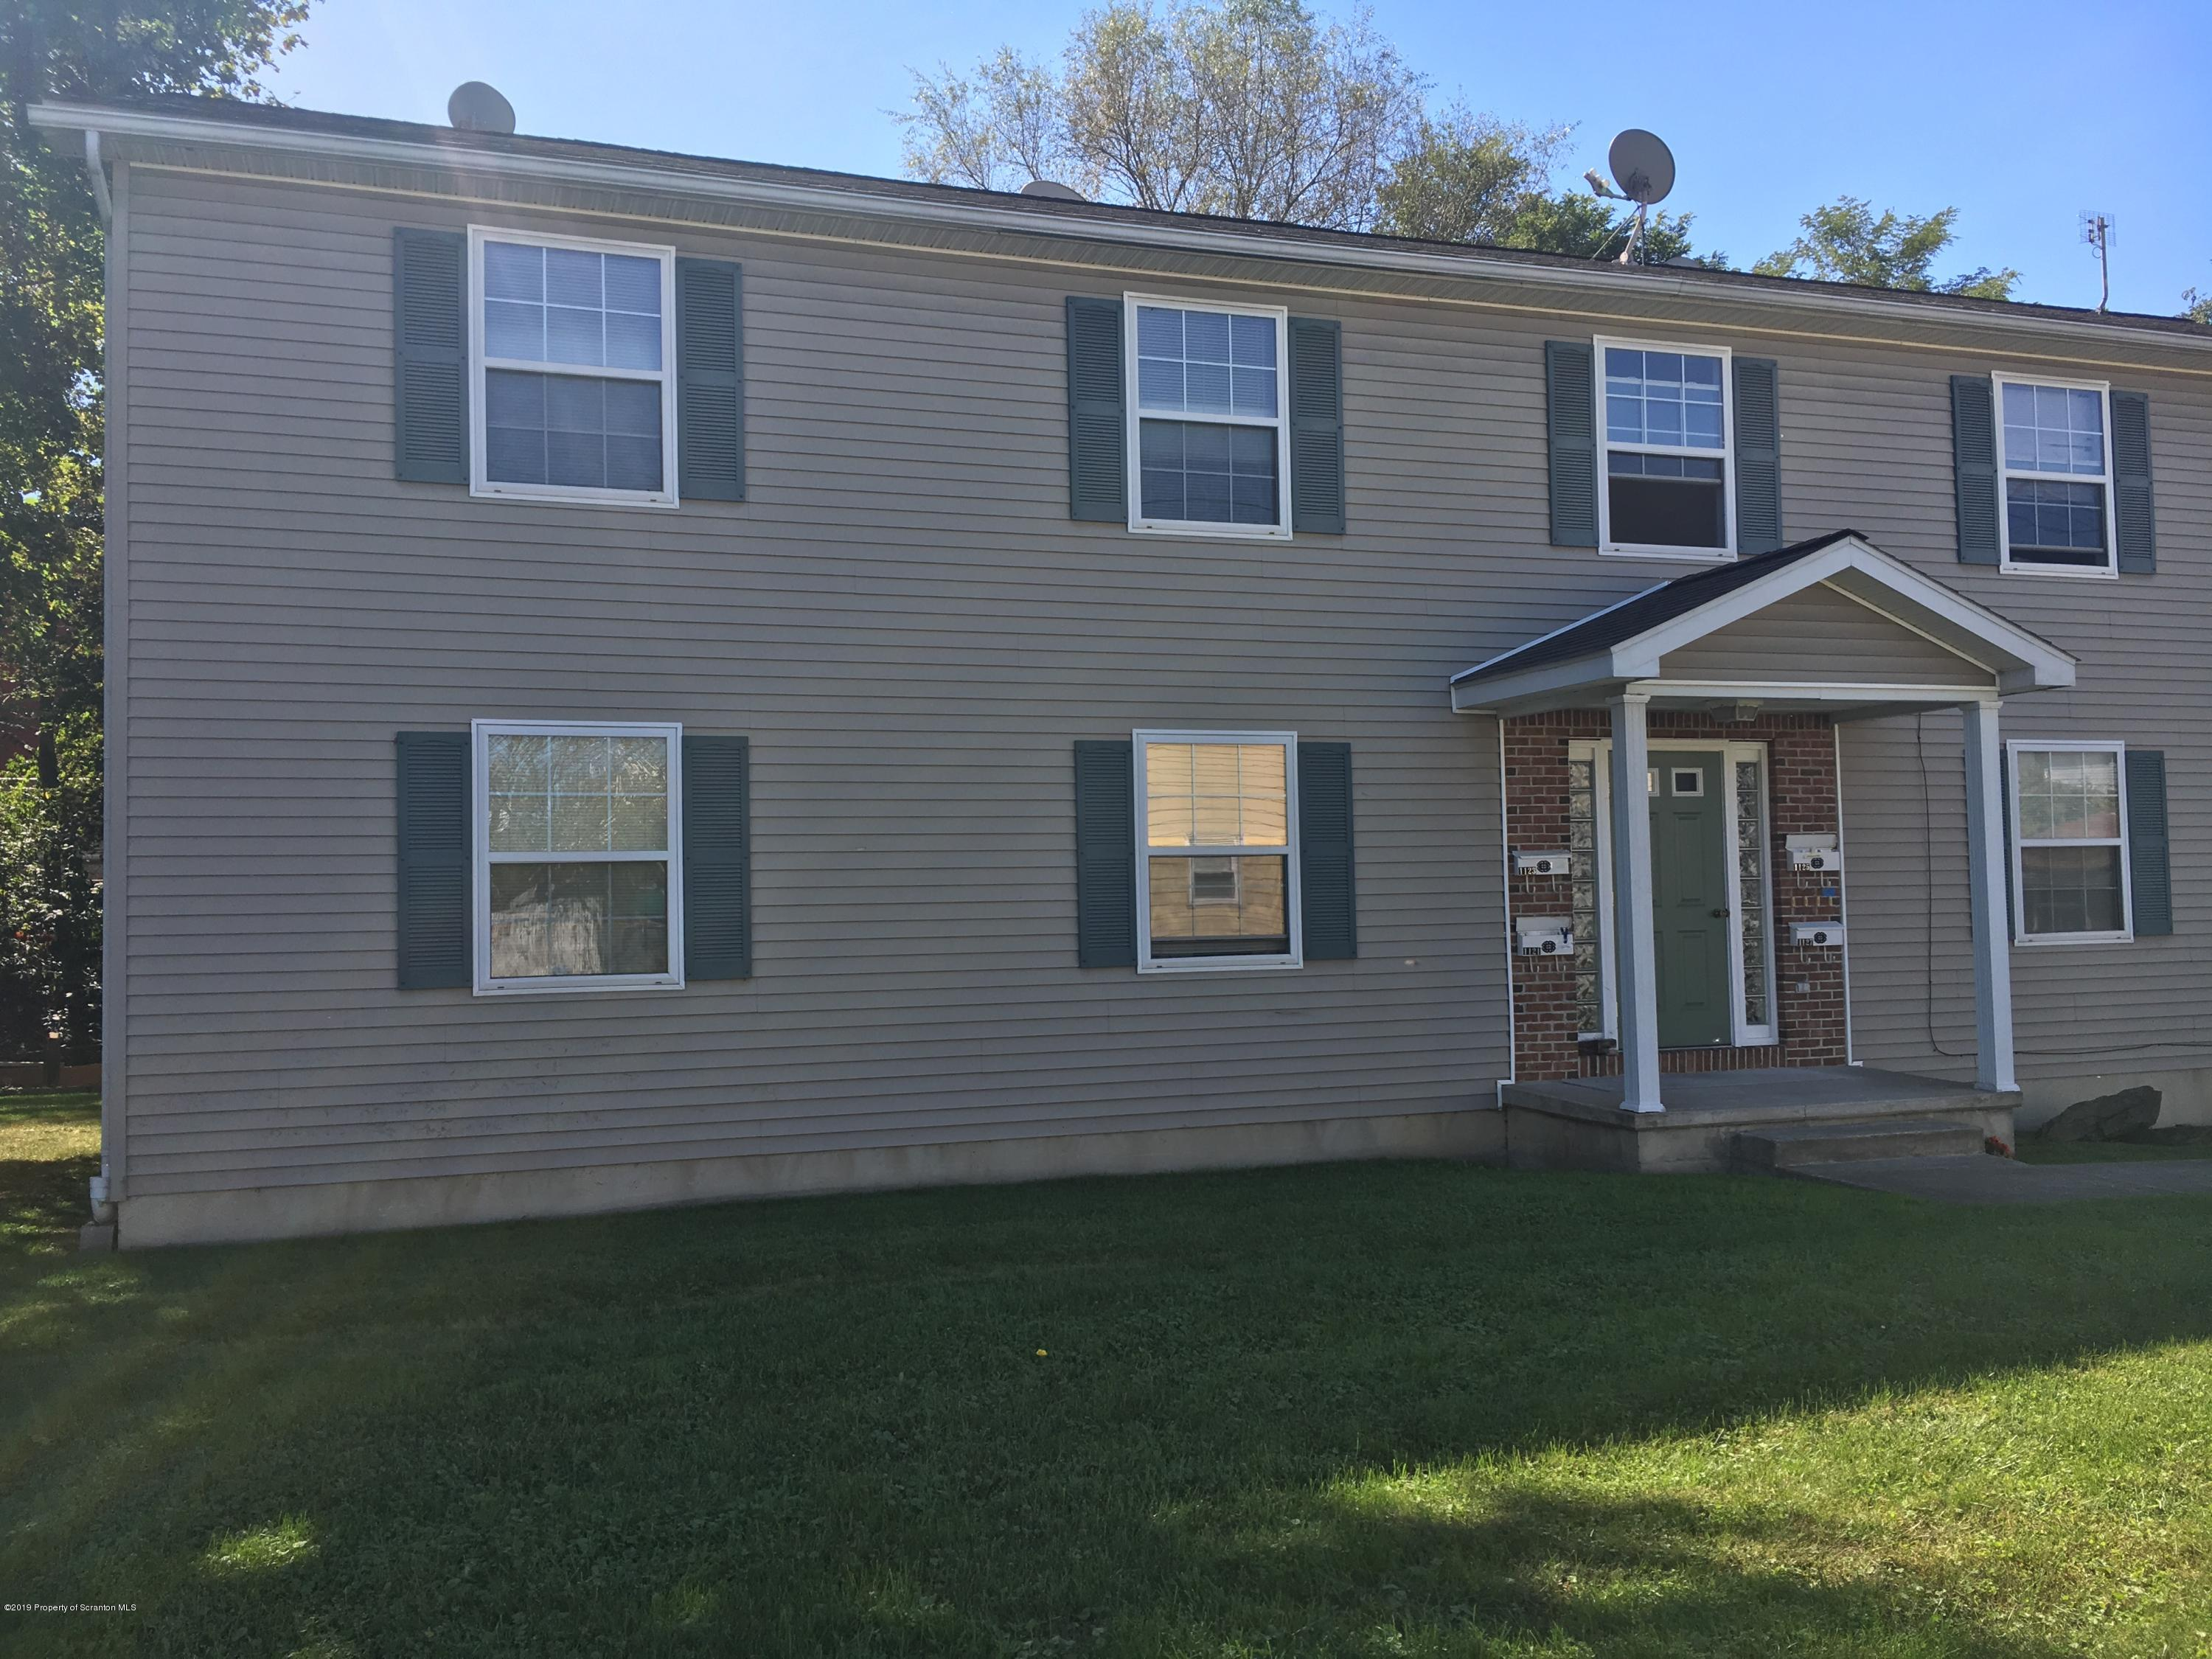 1133 Kerstetter Ave., Taylor, Pennsylvania 18517, 2 Bedrooms Bedrooms, 5 Rooms Rooms,1 BathroomBathrooms,Rental,For Lease,Kerstetter,19-4253